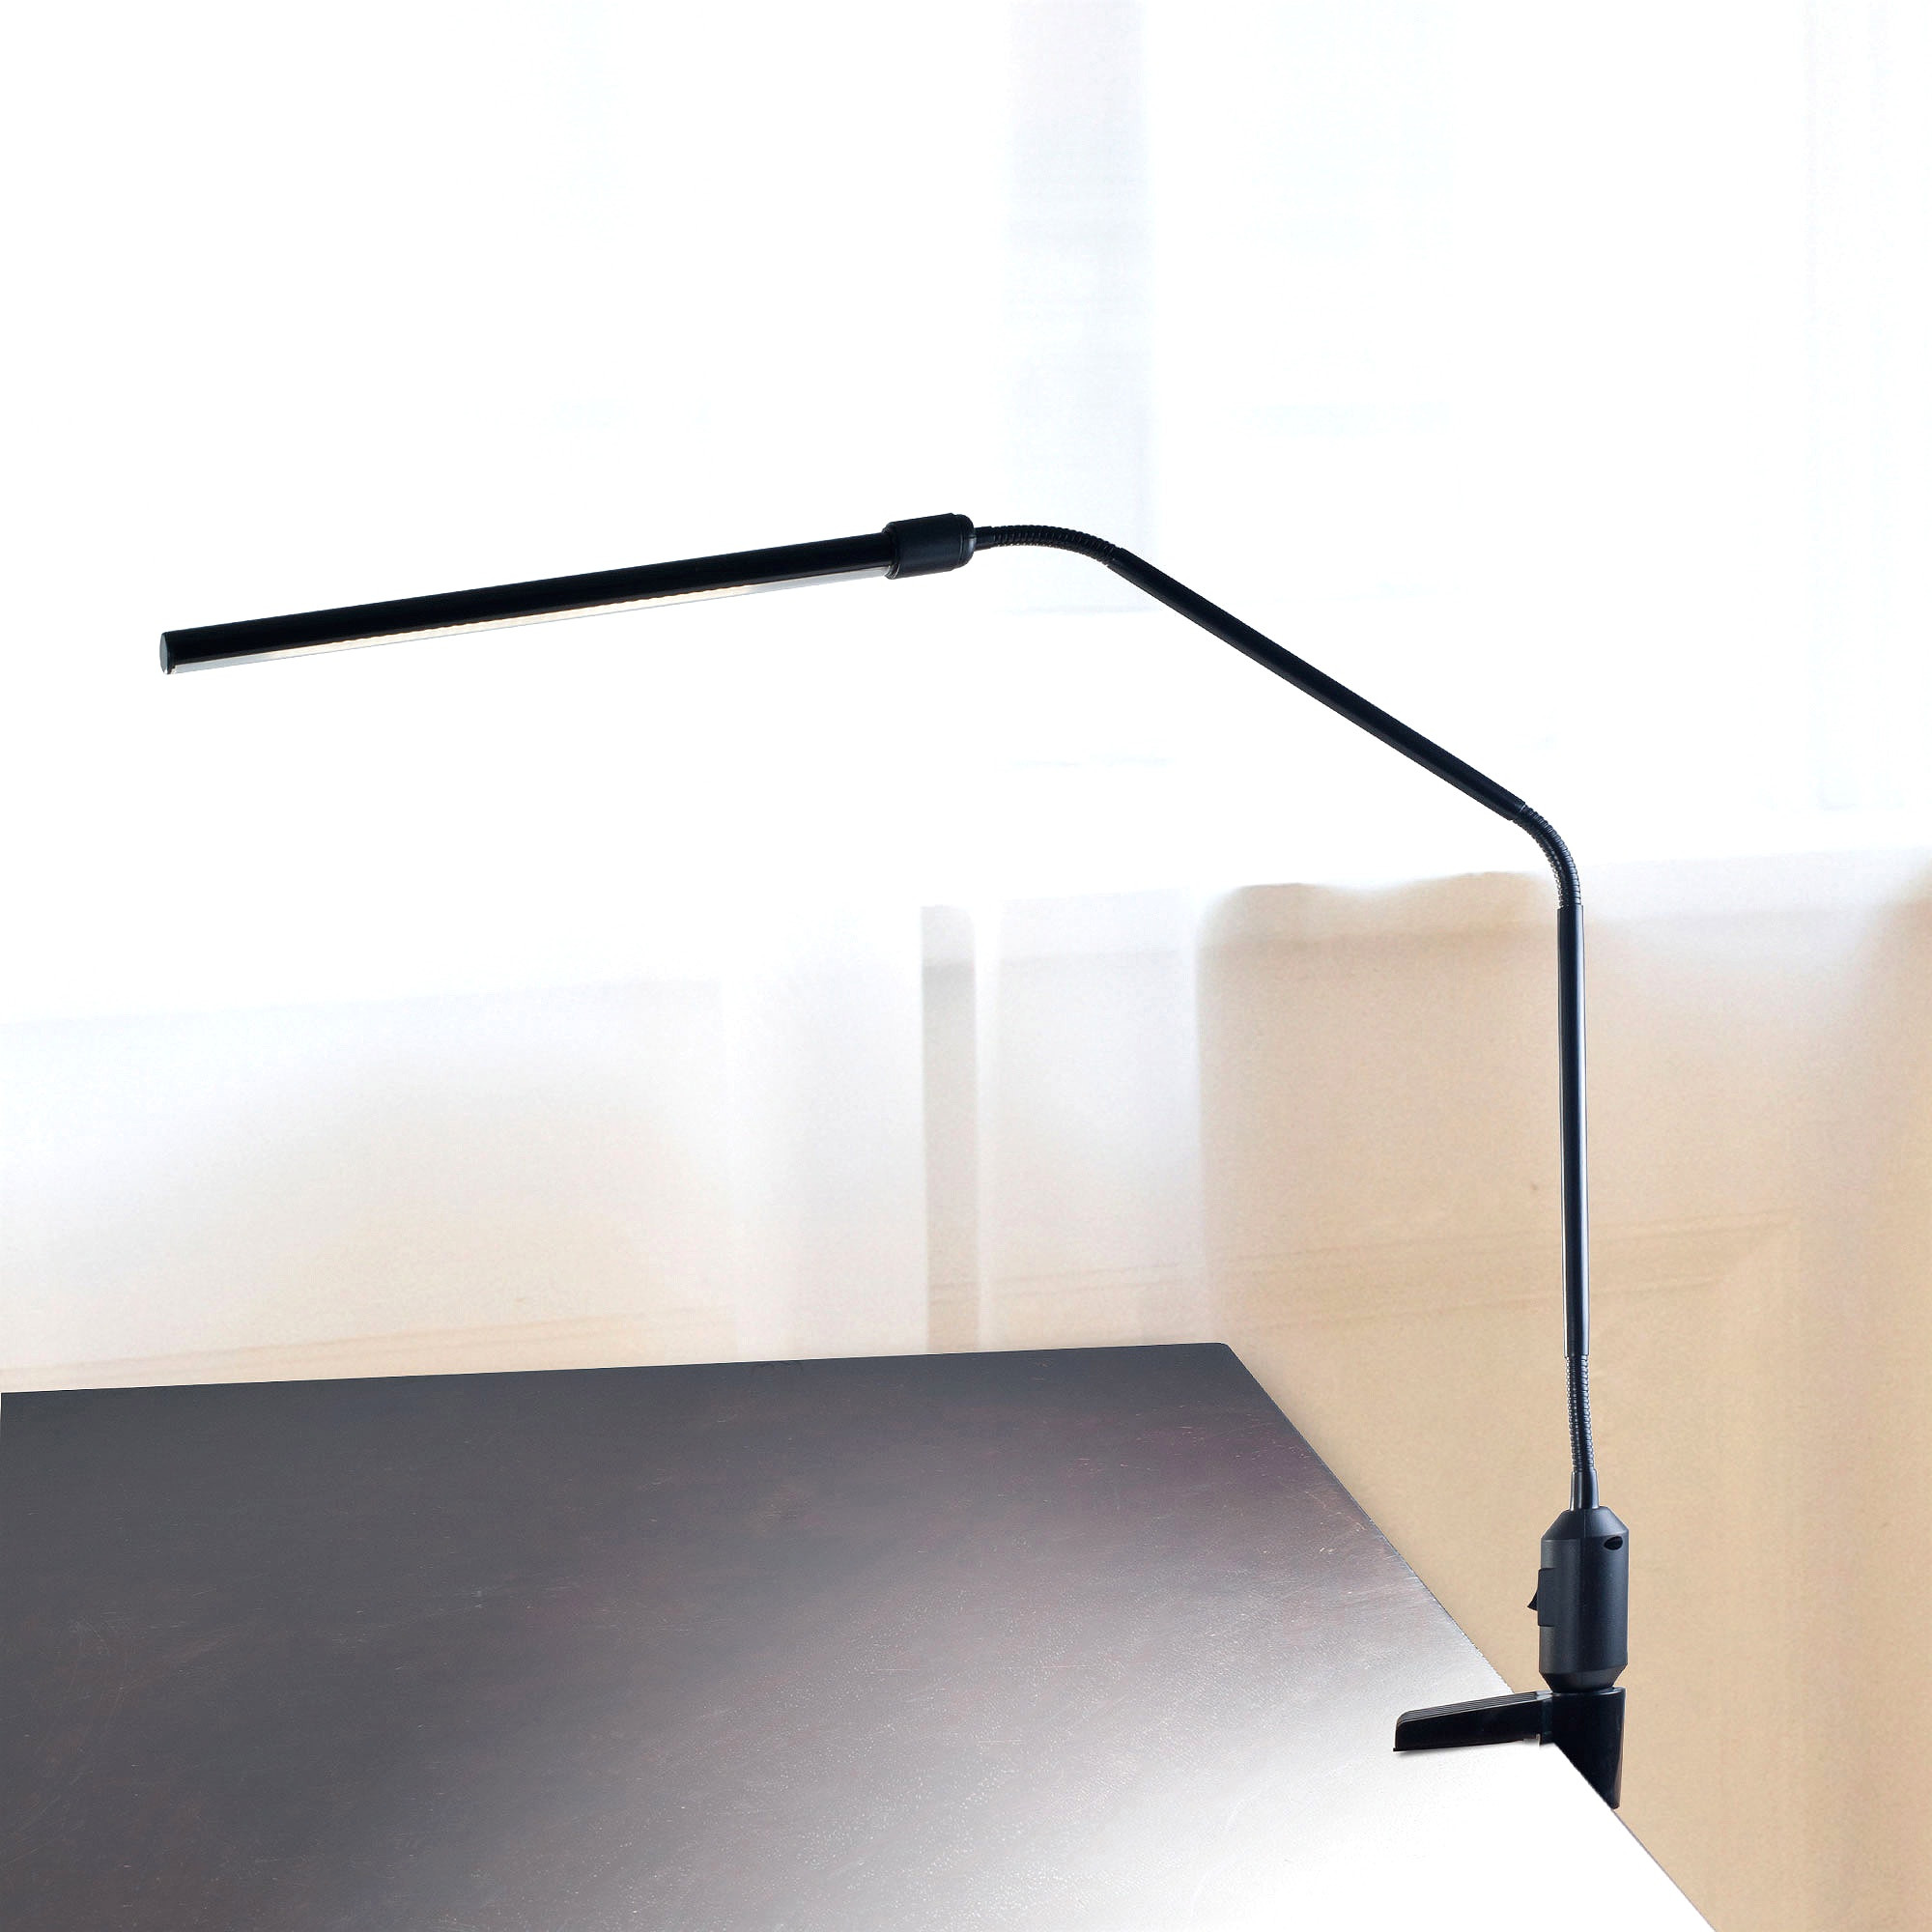 Best ideas about Best Desk Lamp For Eyes . Save or Pin Chic Best Desk Lamp For Eyes In Innori Reading Lamps Now.